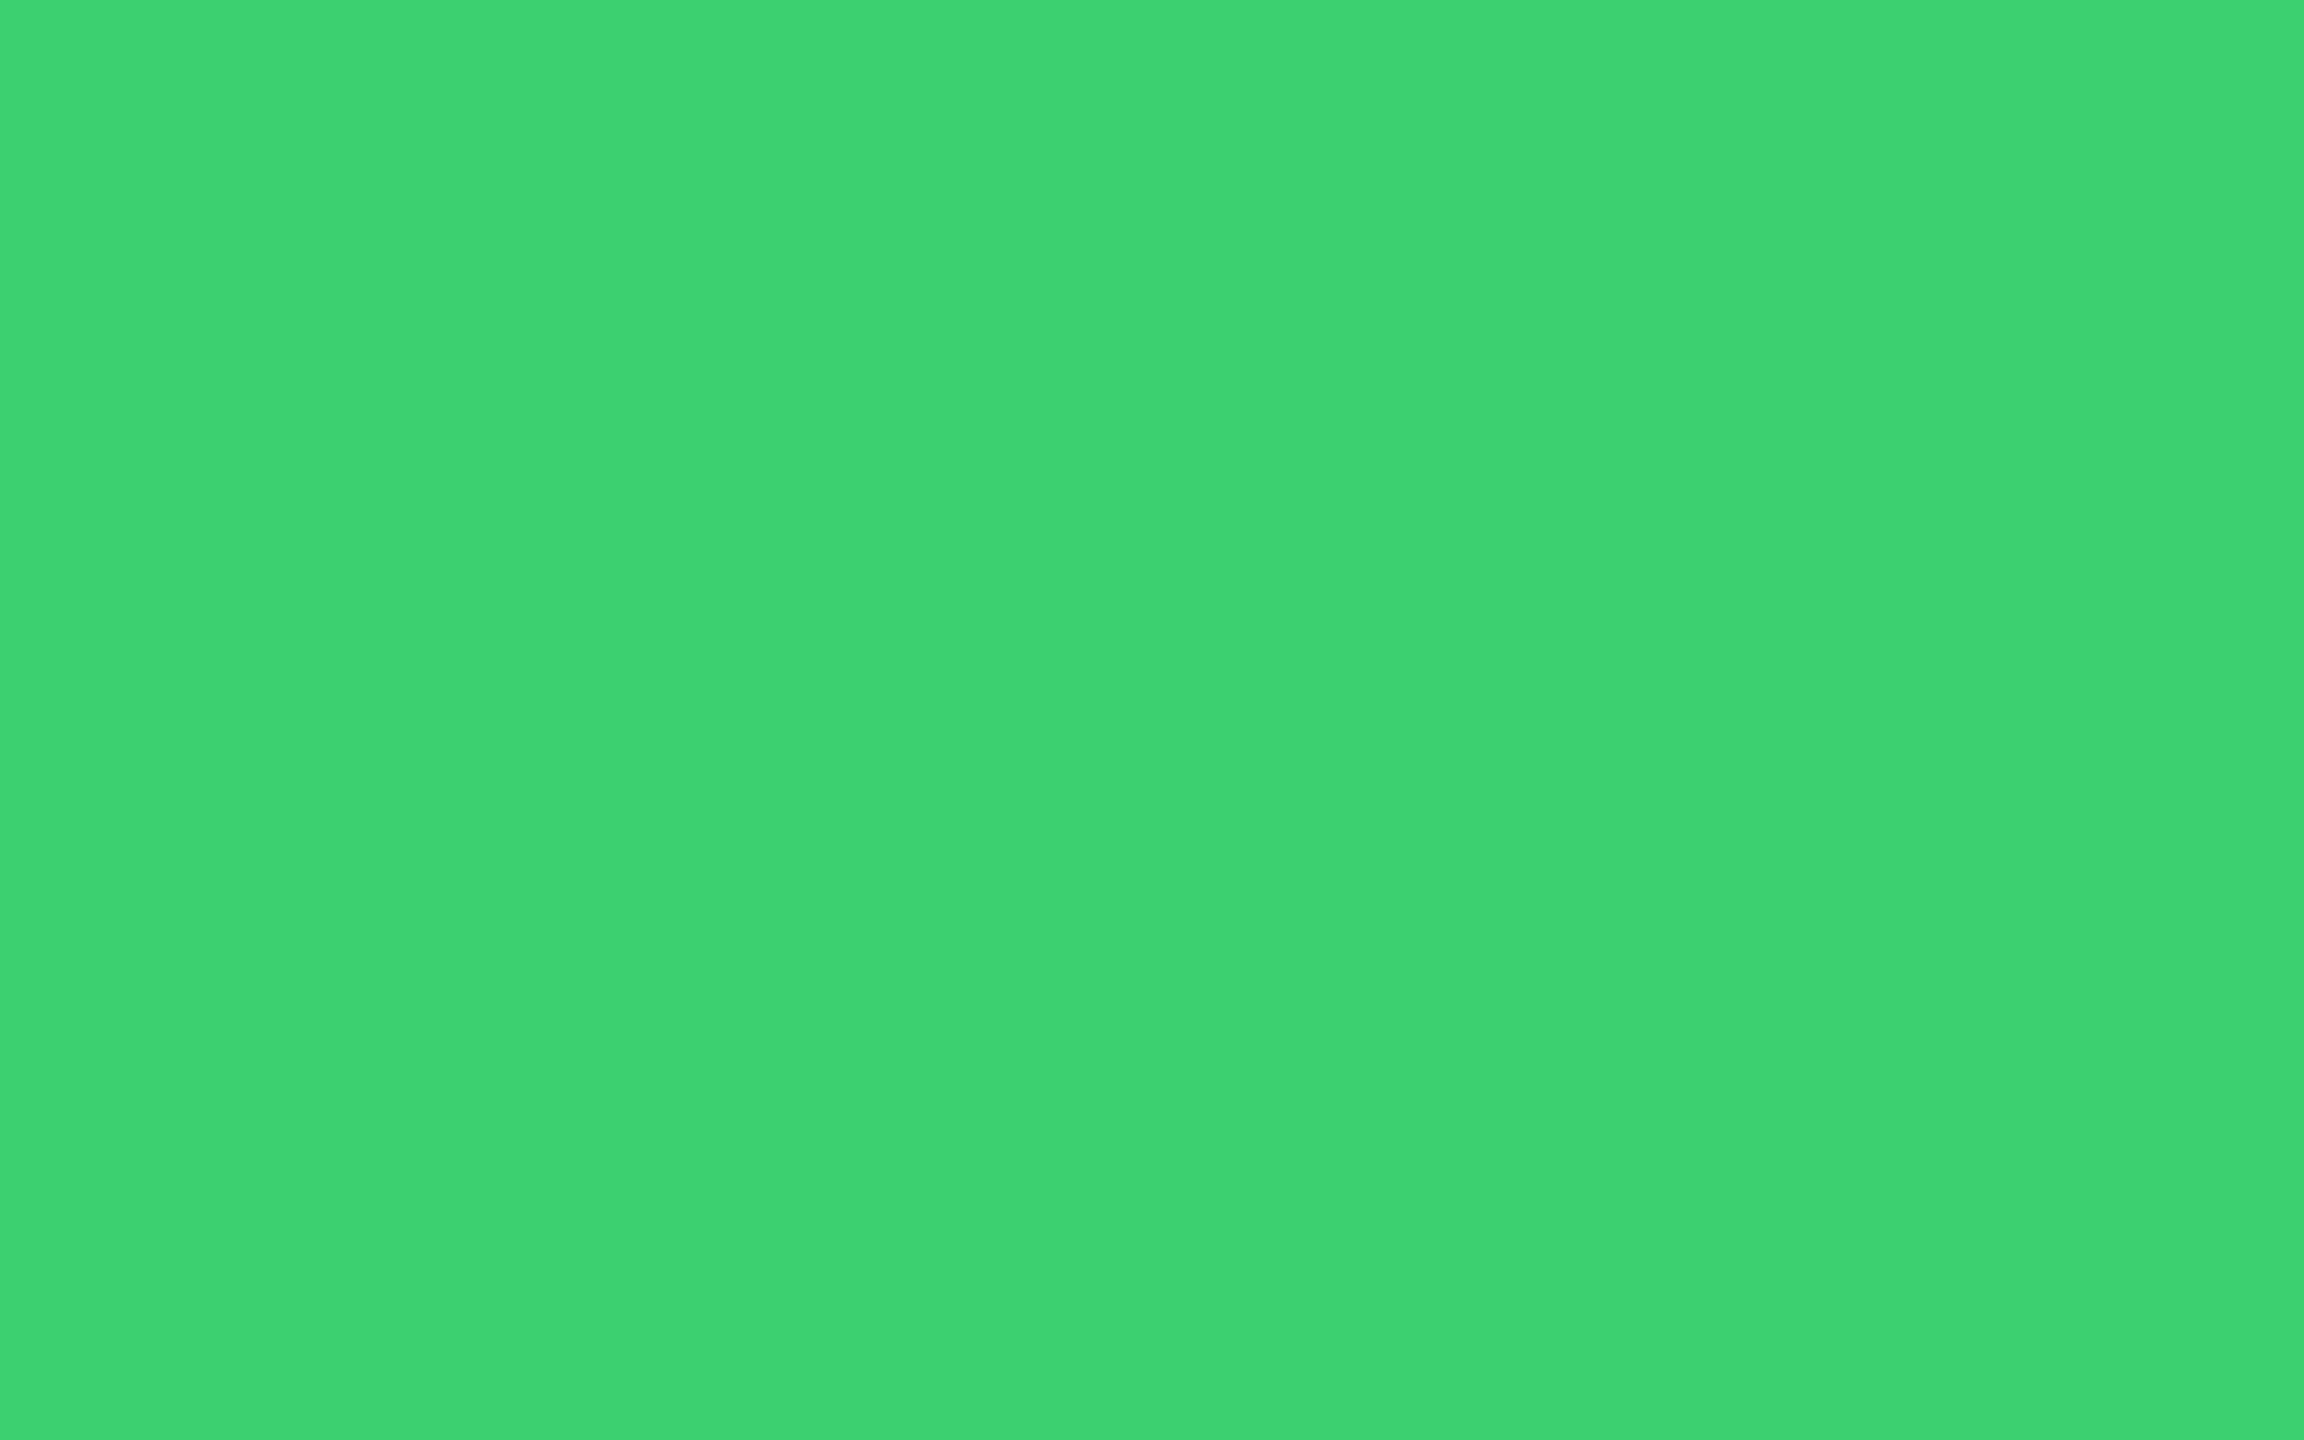 2304x1440 UFO Green Solid Color Background